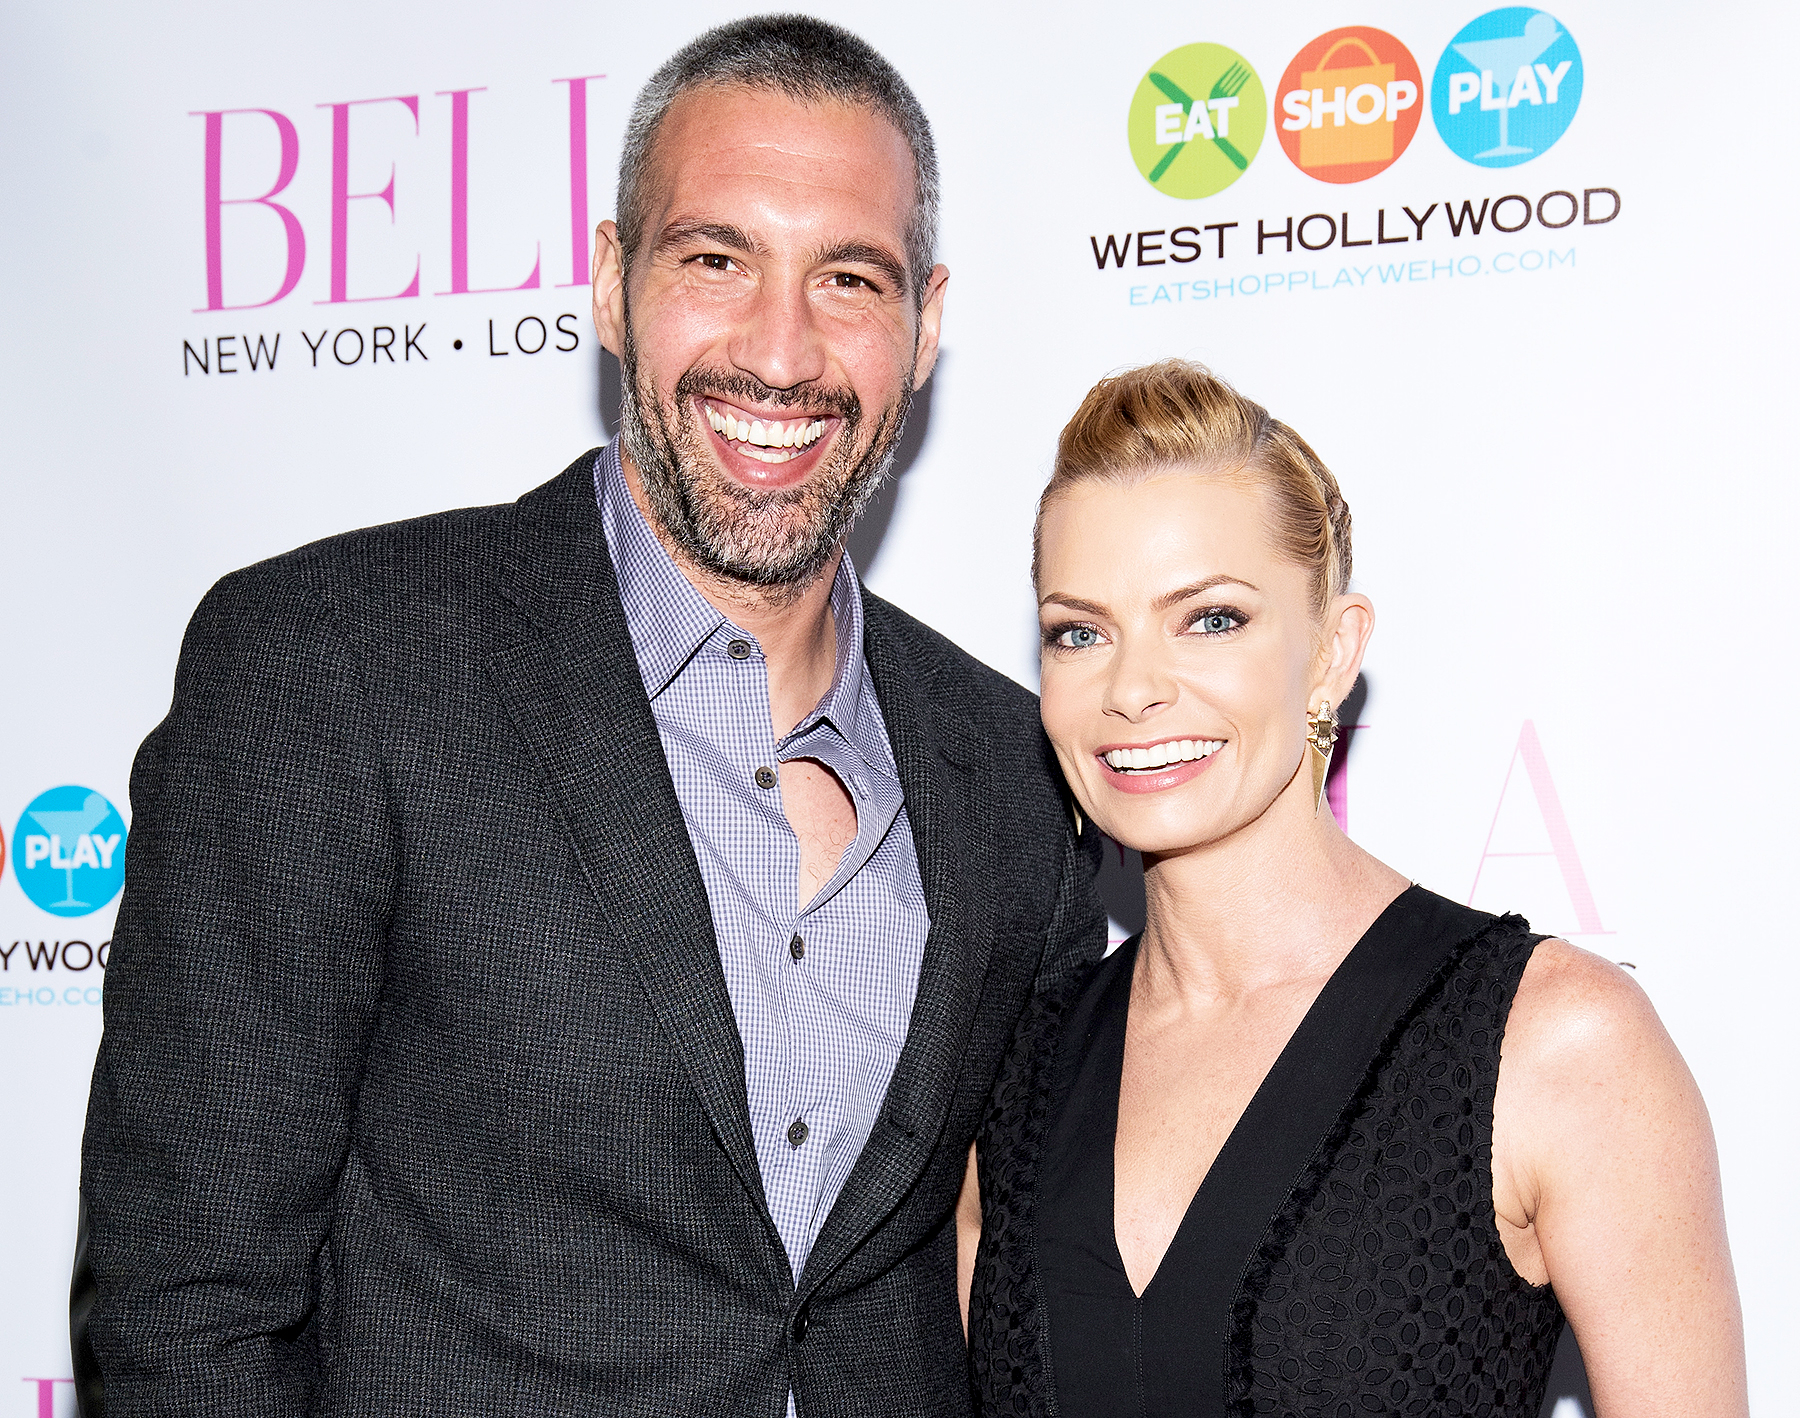 Hamzi Hijazi and Jamie Pressly attend BELLA New York Magazine Beauty Issue Cover Party at Sur Restaurant on May 21, 2016 in Los Angeles, California.